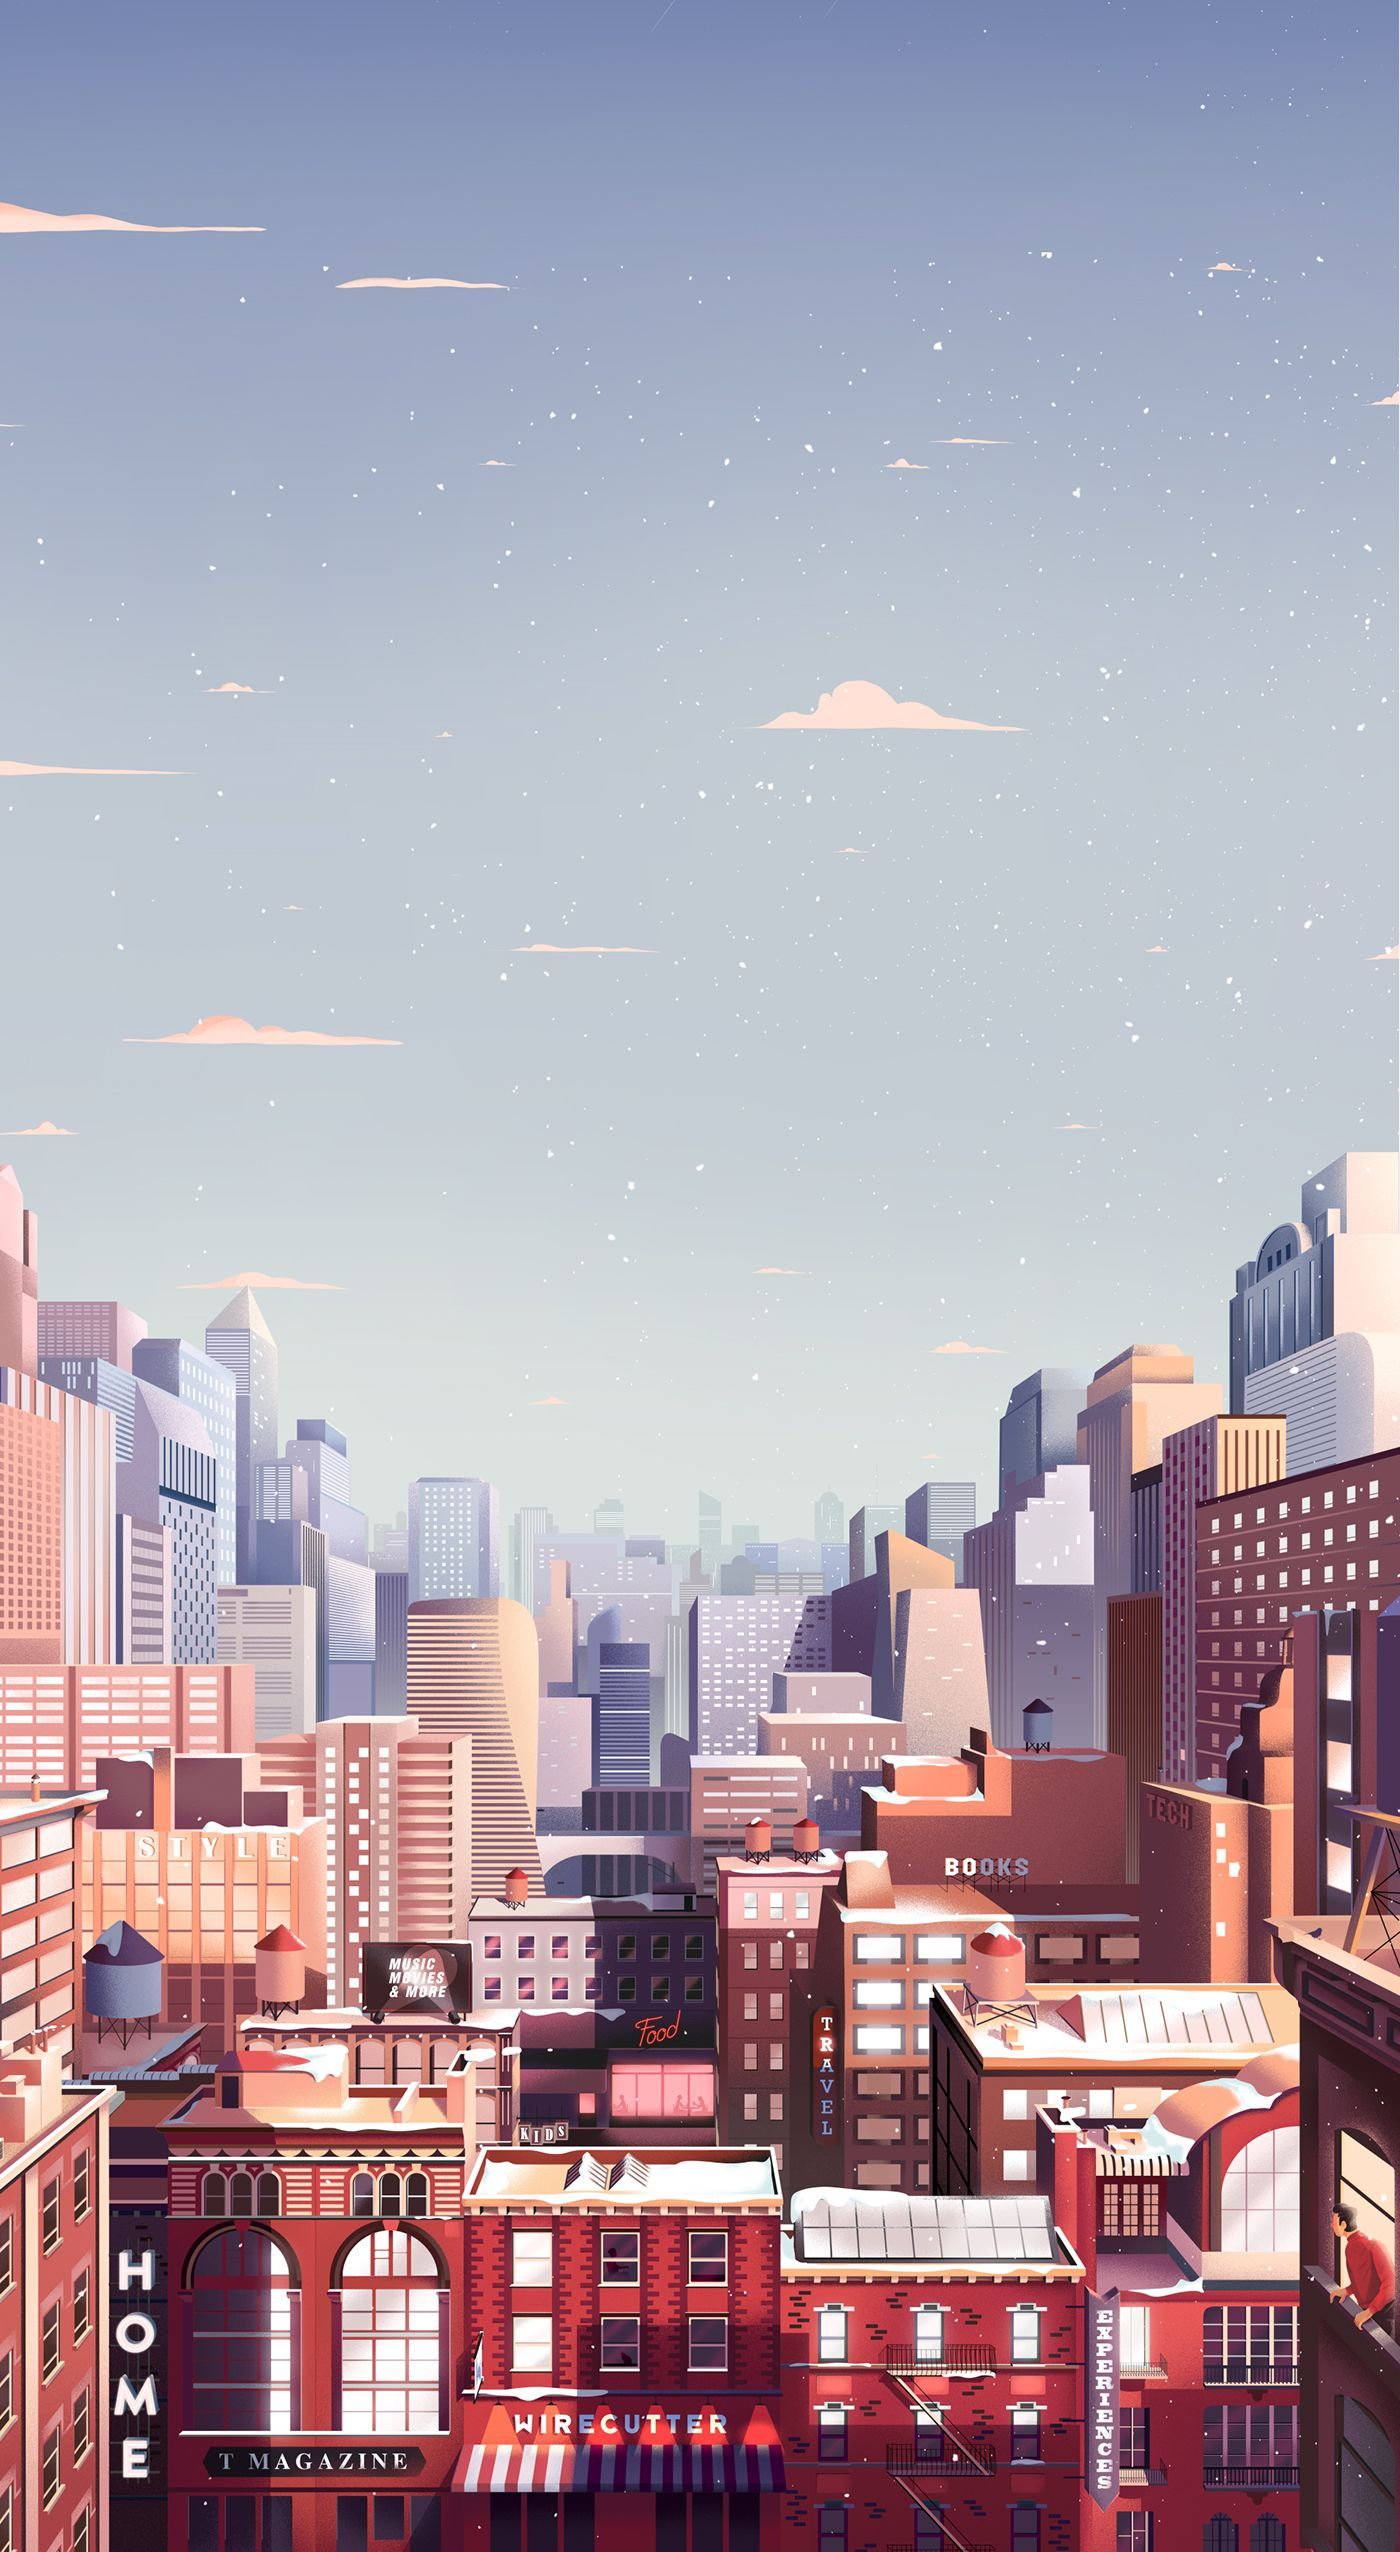 The New York Times Gift Guide On Behance Aesthetic Wallpapers Building Illustration City Illustration